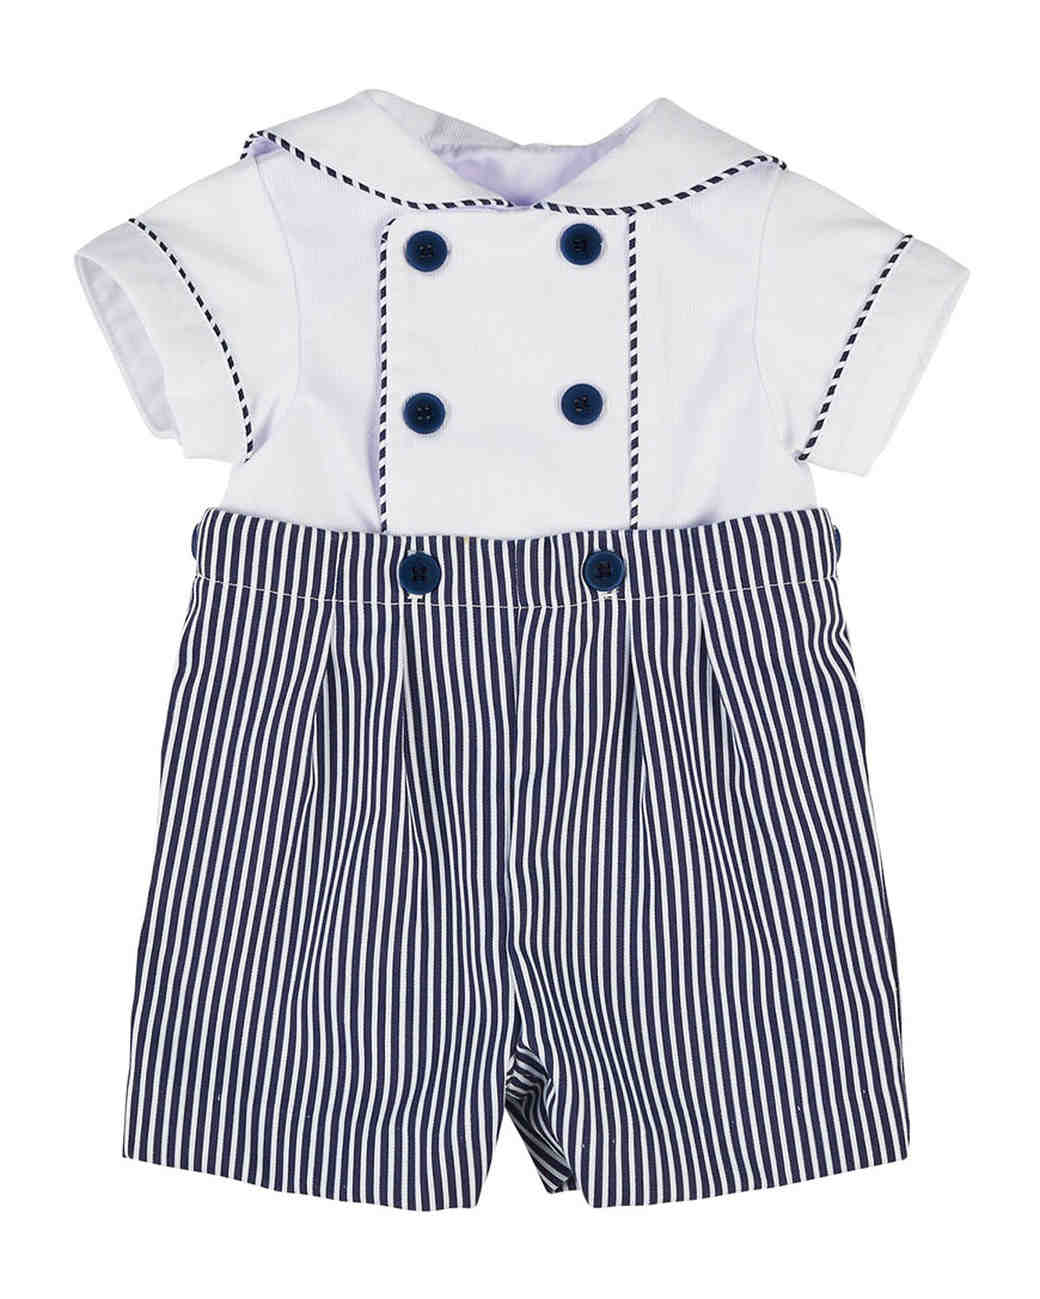 Florence Eiseman Stripe Button-On Shortall